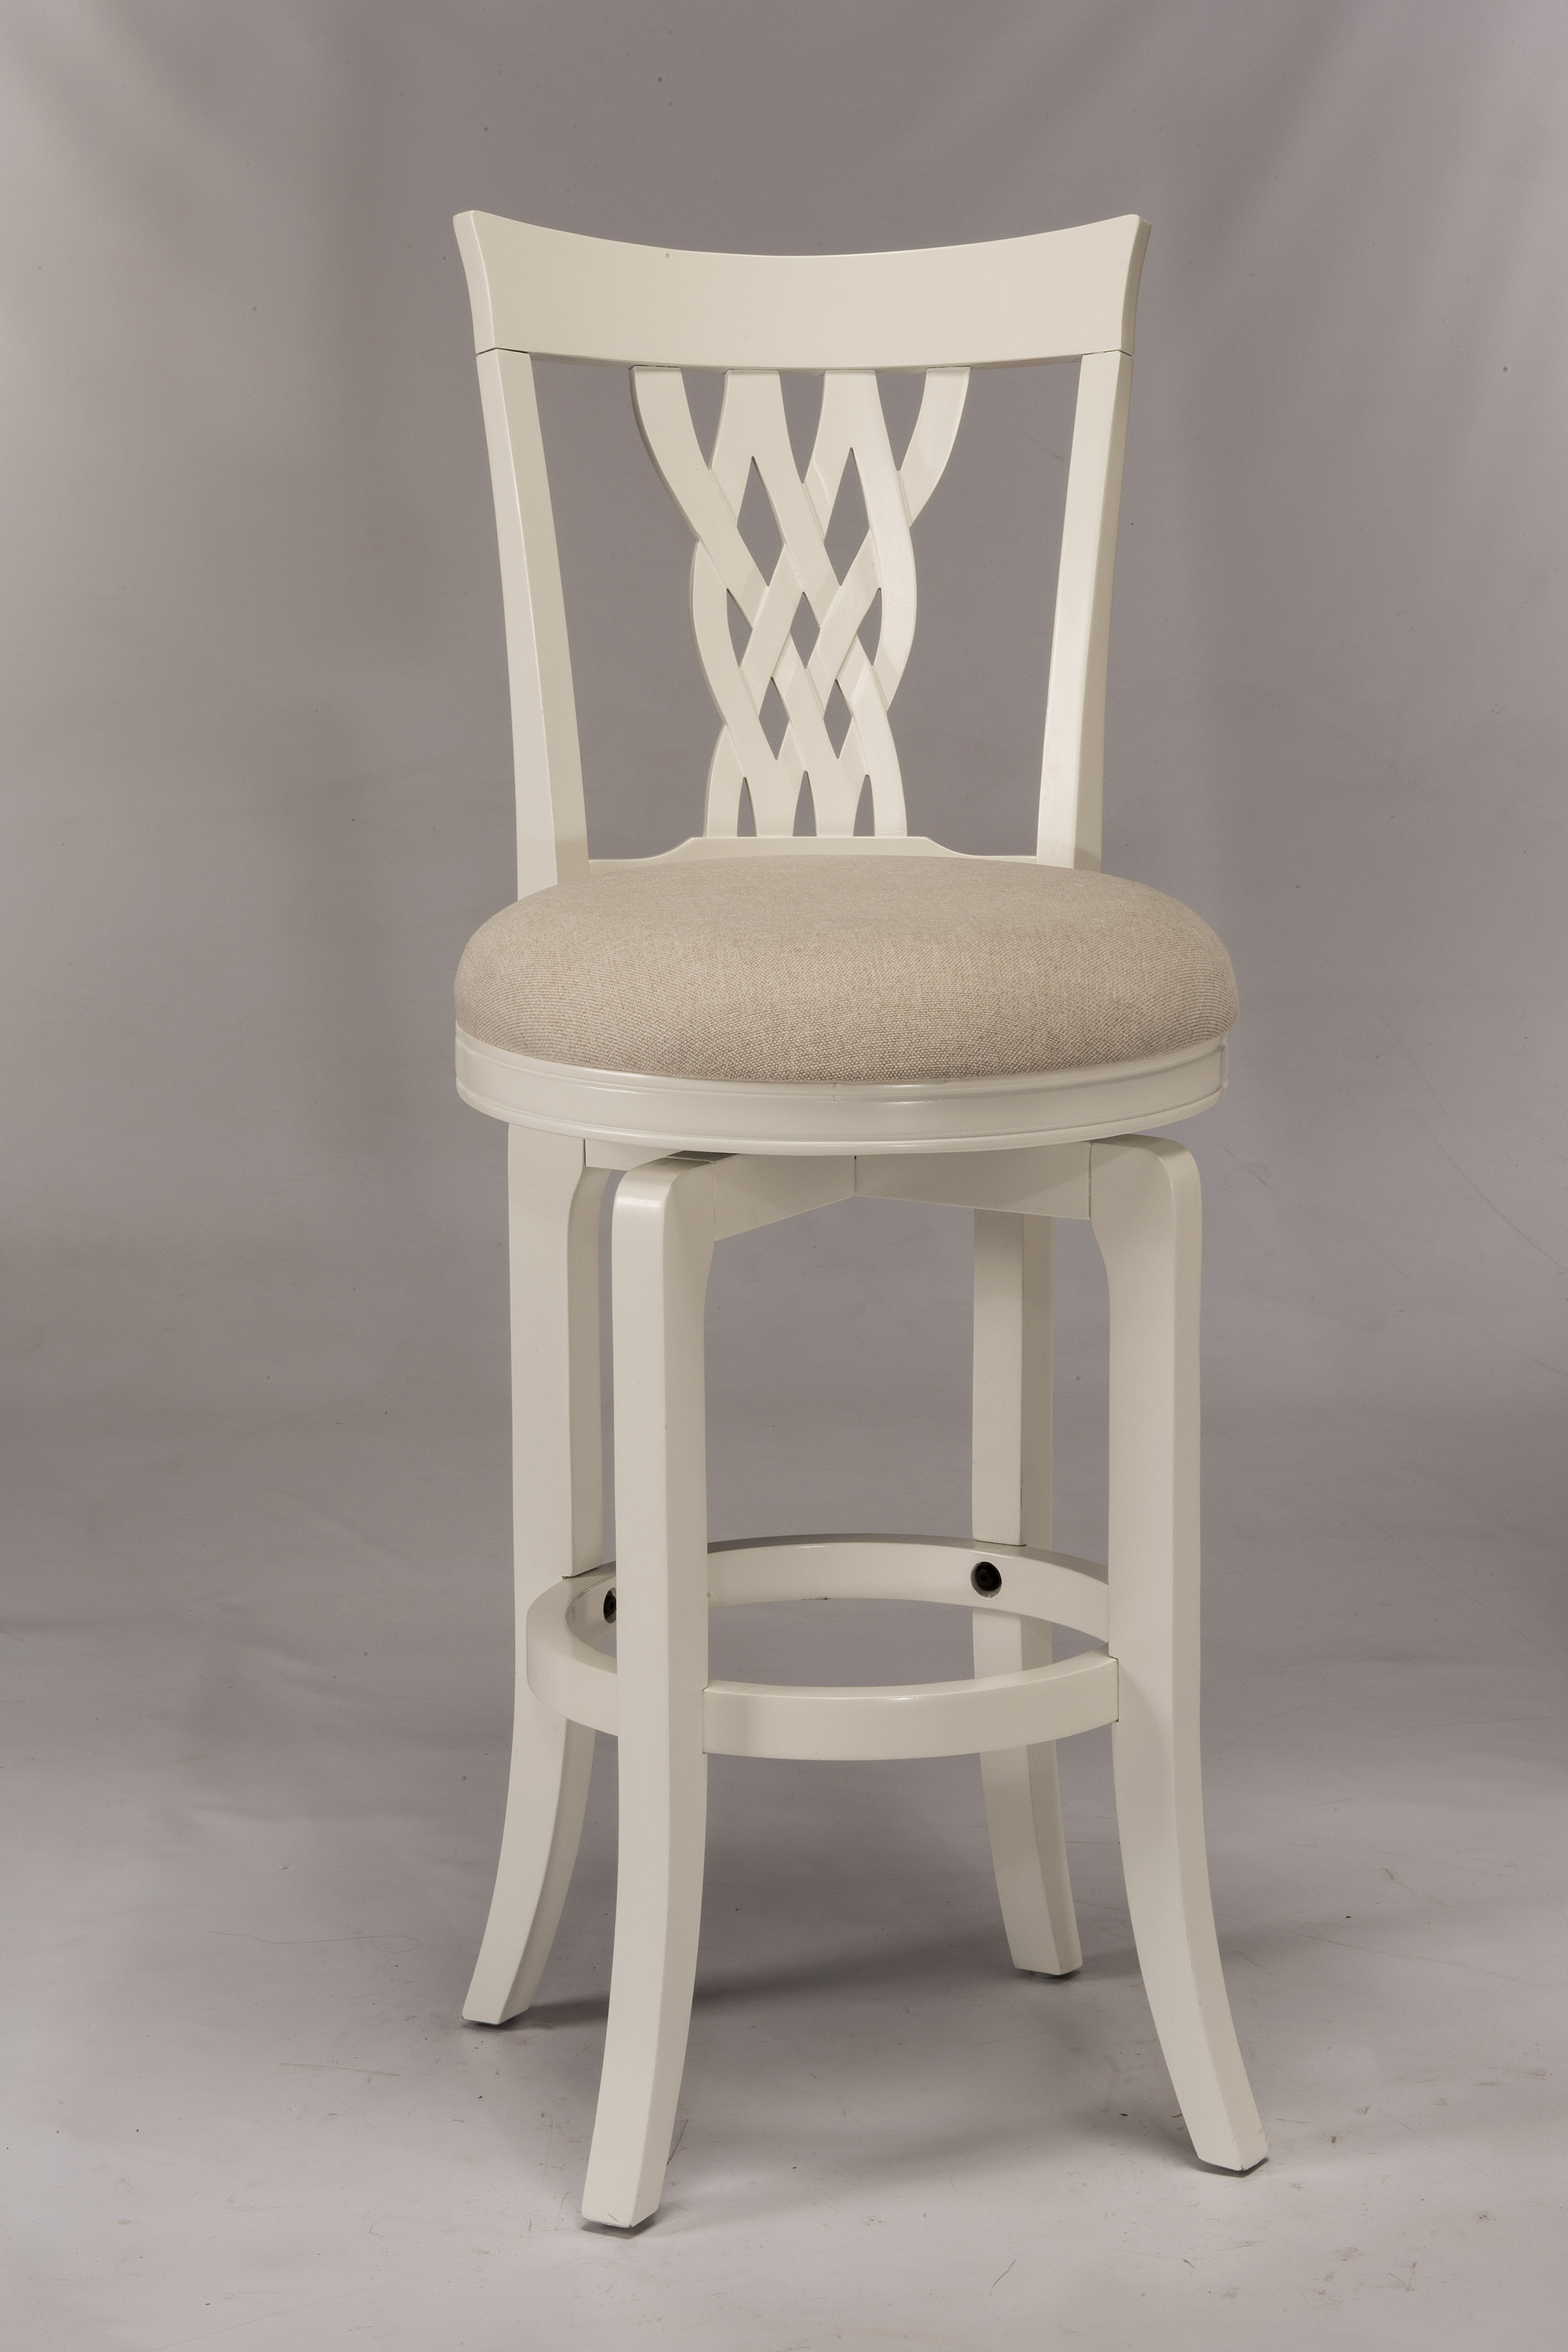 Hillsdale Wood Stools 5753 830 White Swiveling Bar Stool